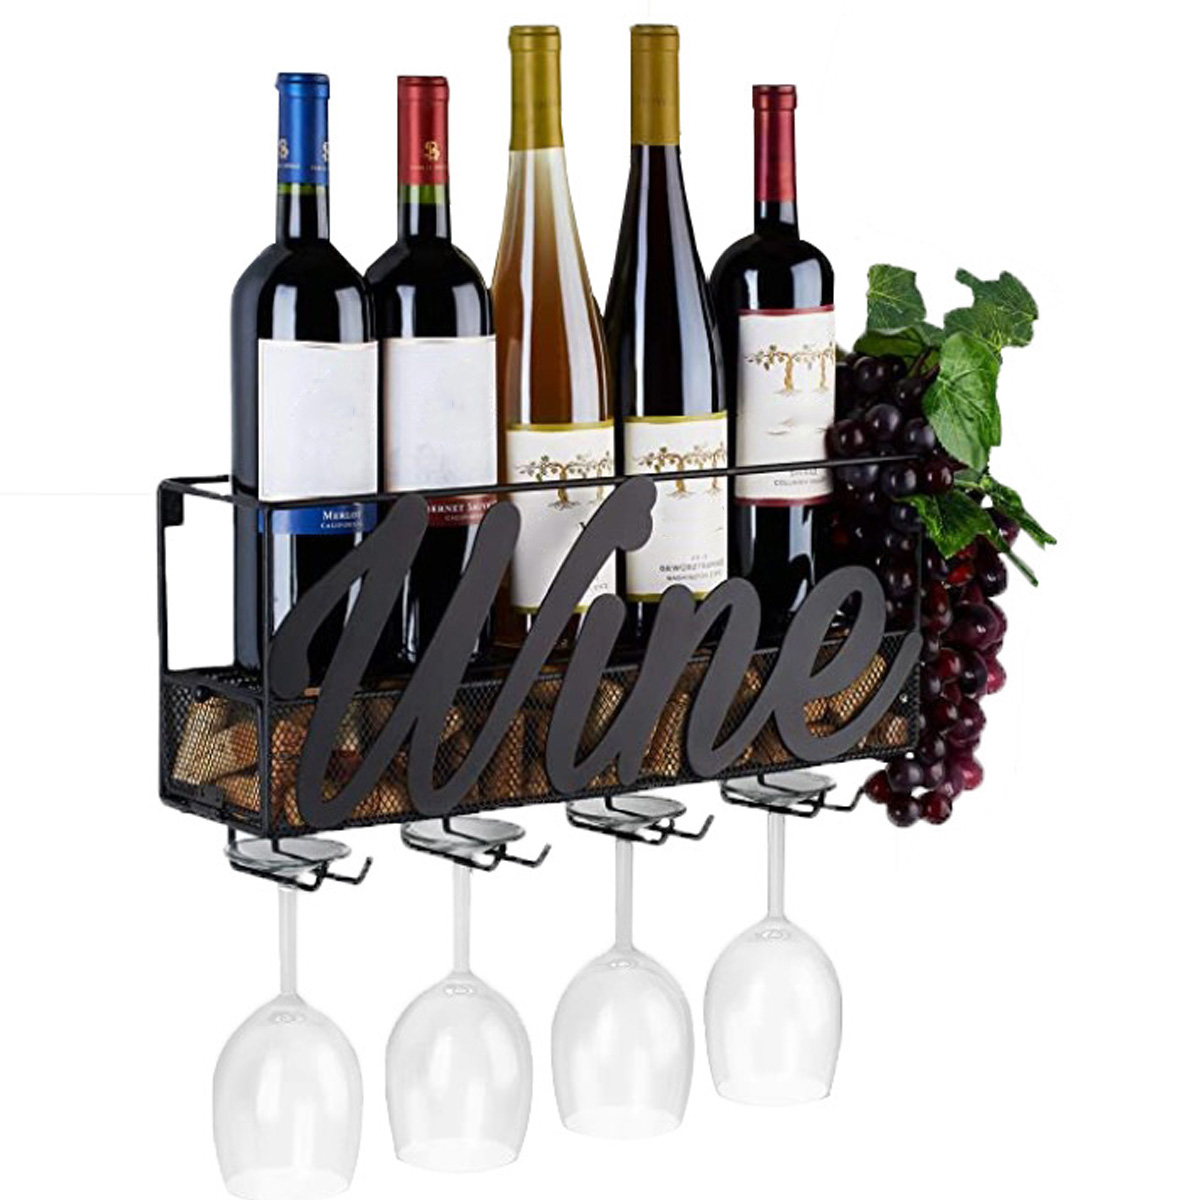 Champagne-Shelf Bottle Wine-Rack Wine-Glass-Holders Wall-Mounted Metal with Extra-Cork-Tray